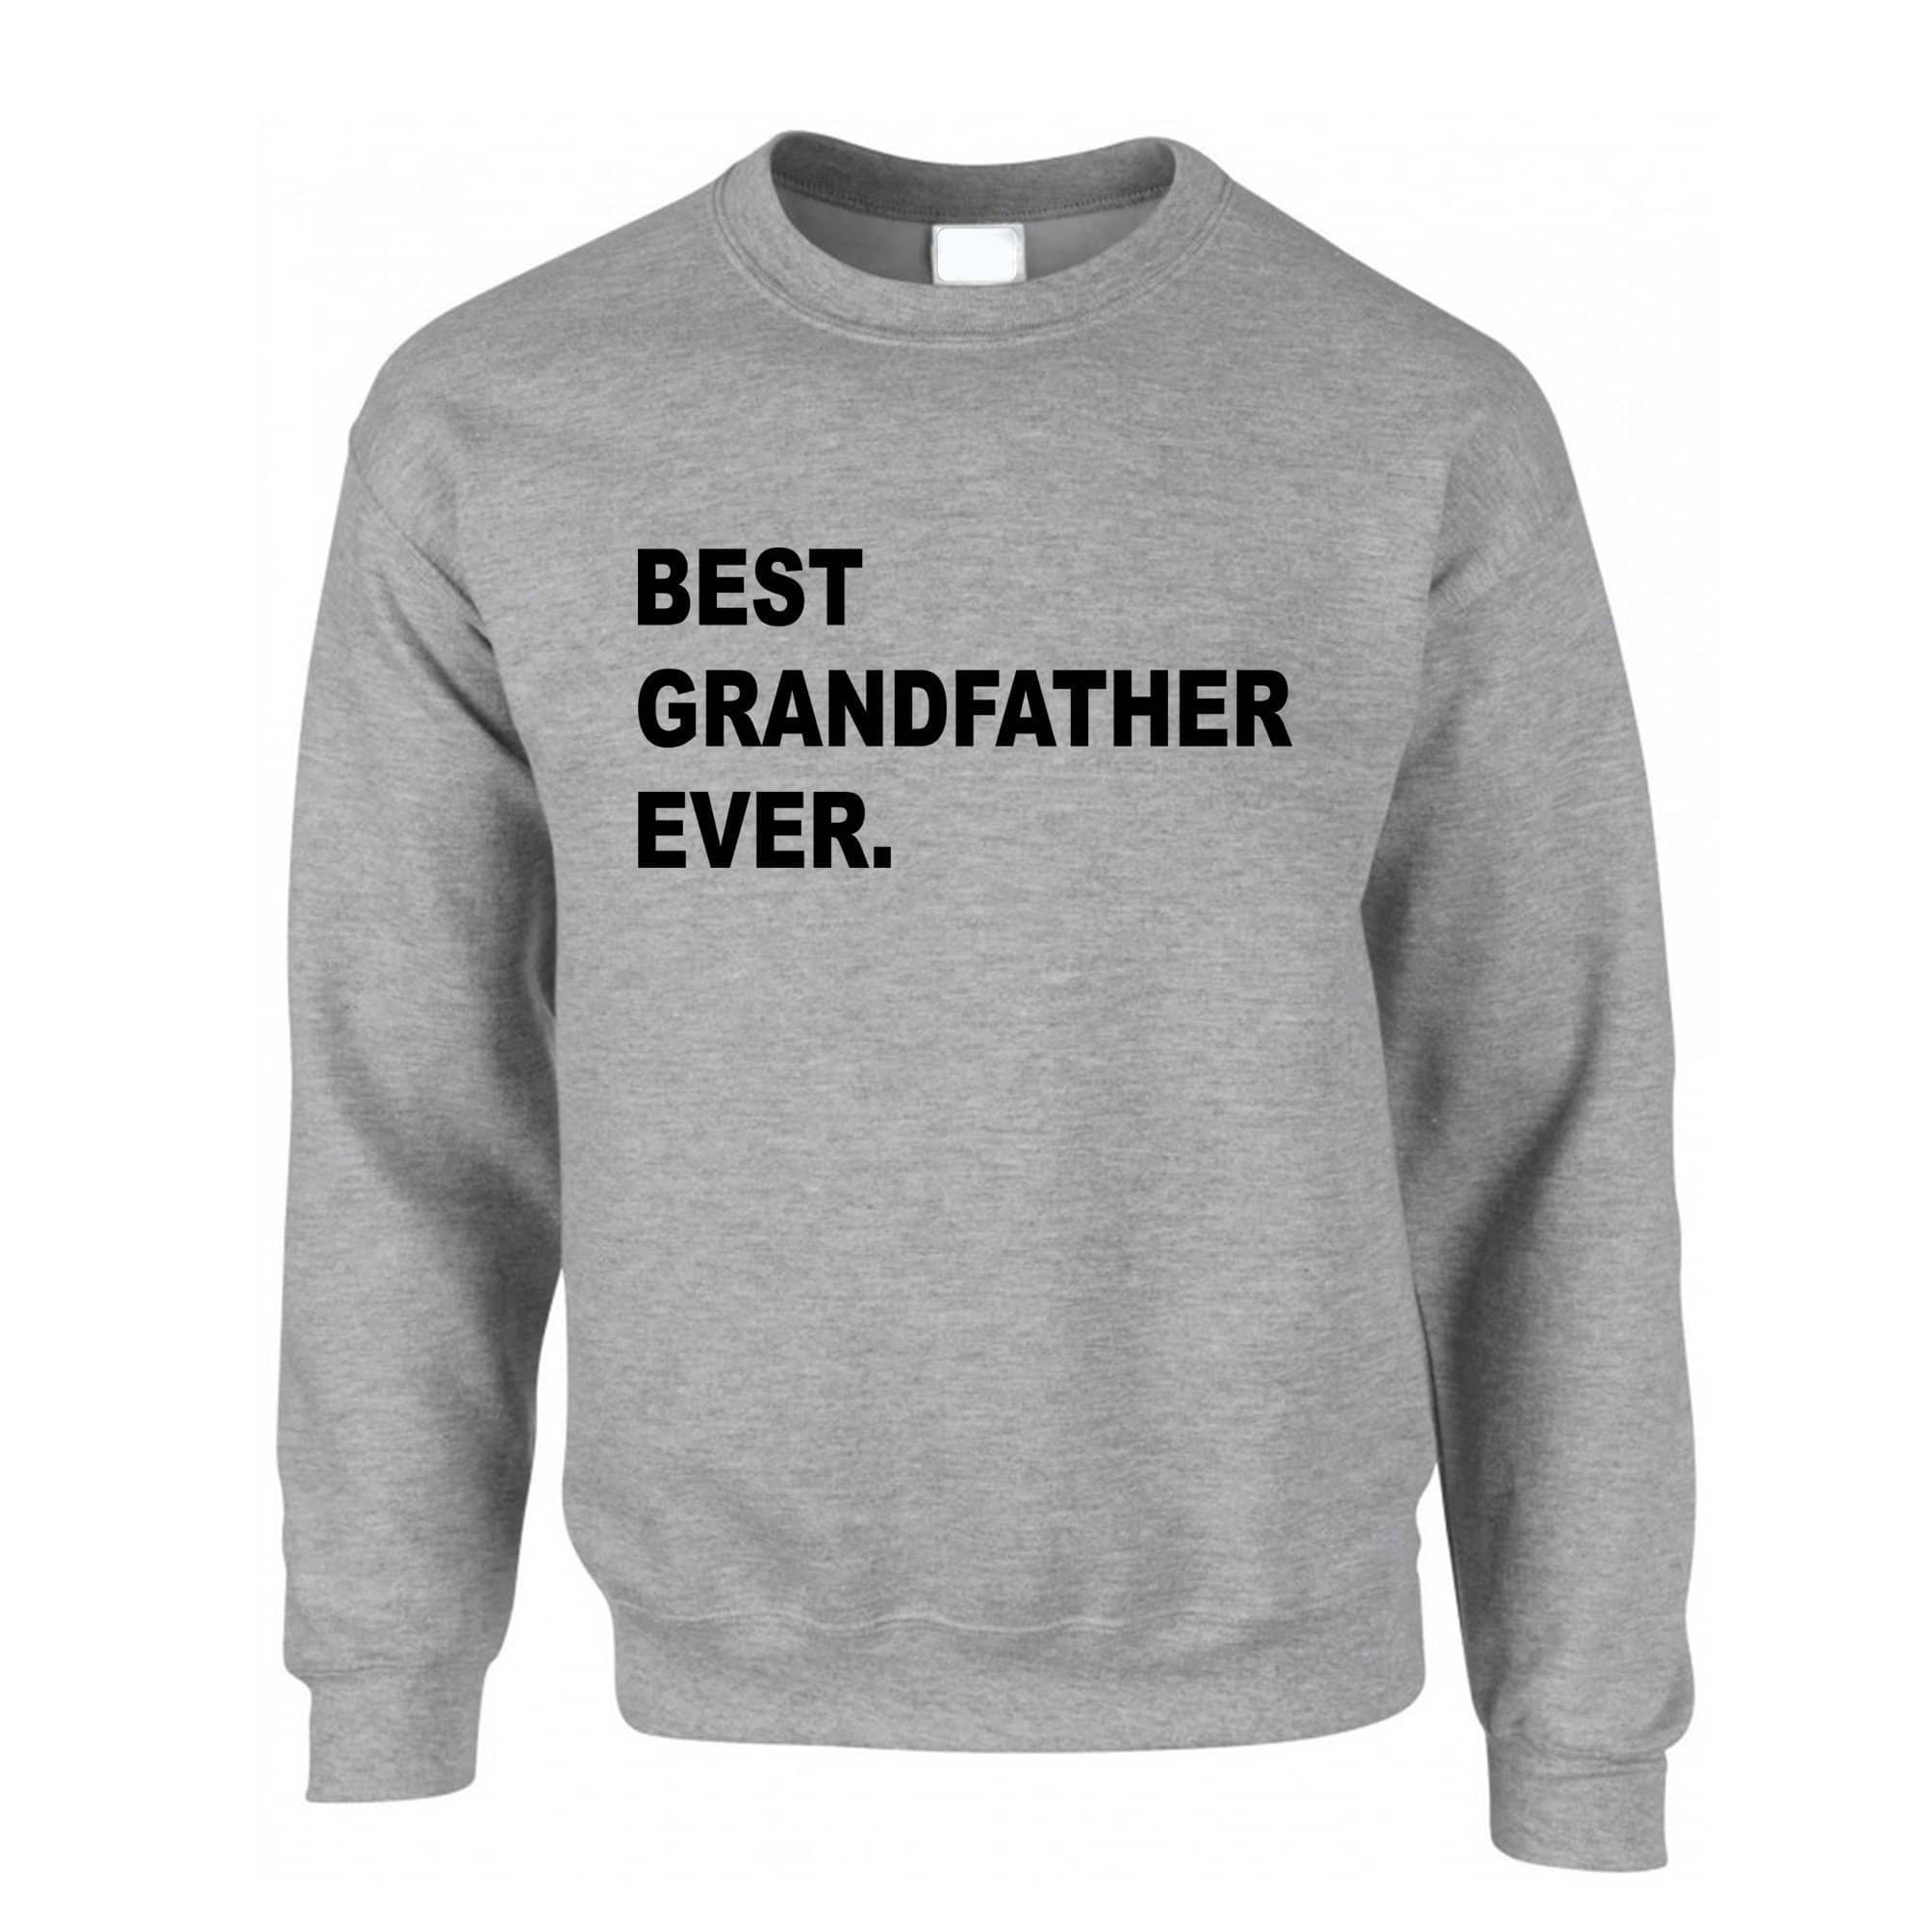 Best Grandfather Ever Jumper Parent Family Slogan Sweatshirt Sweater